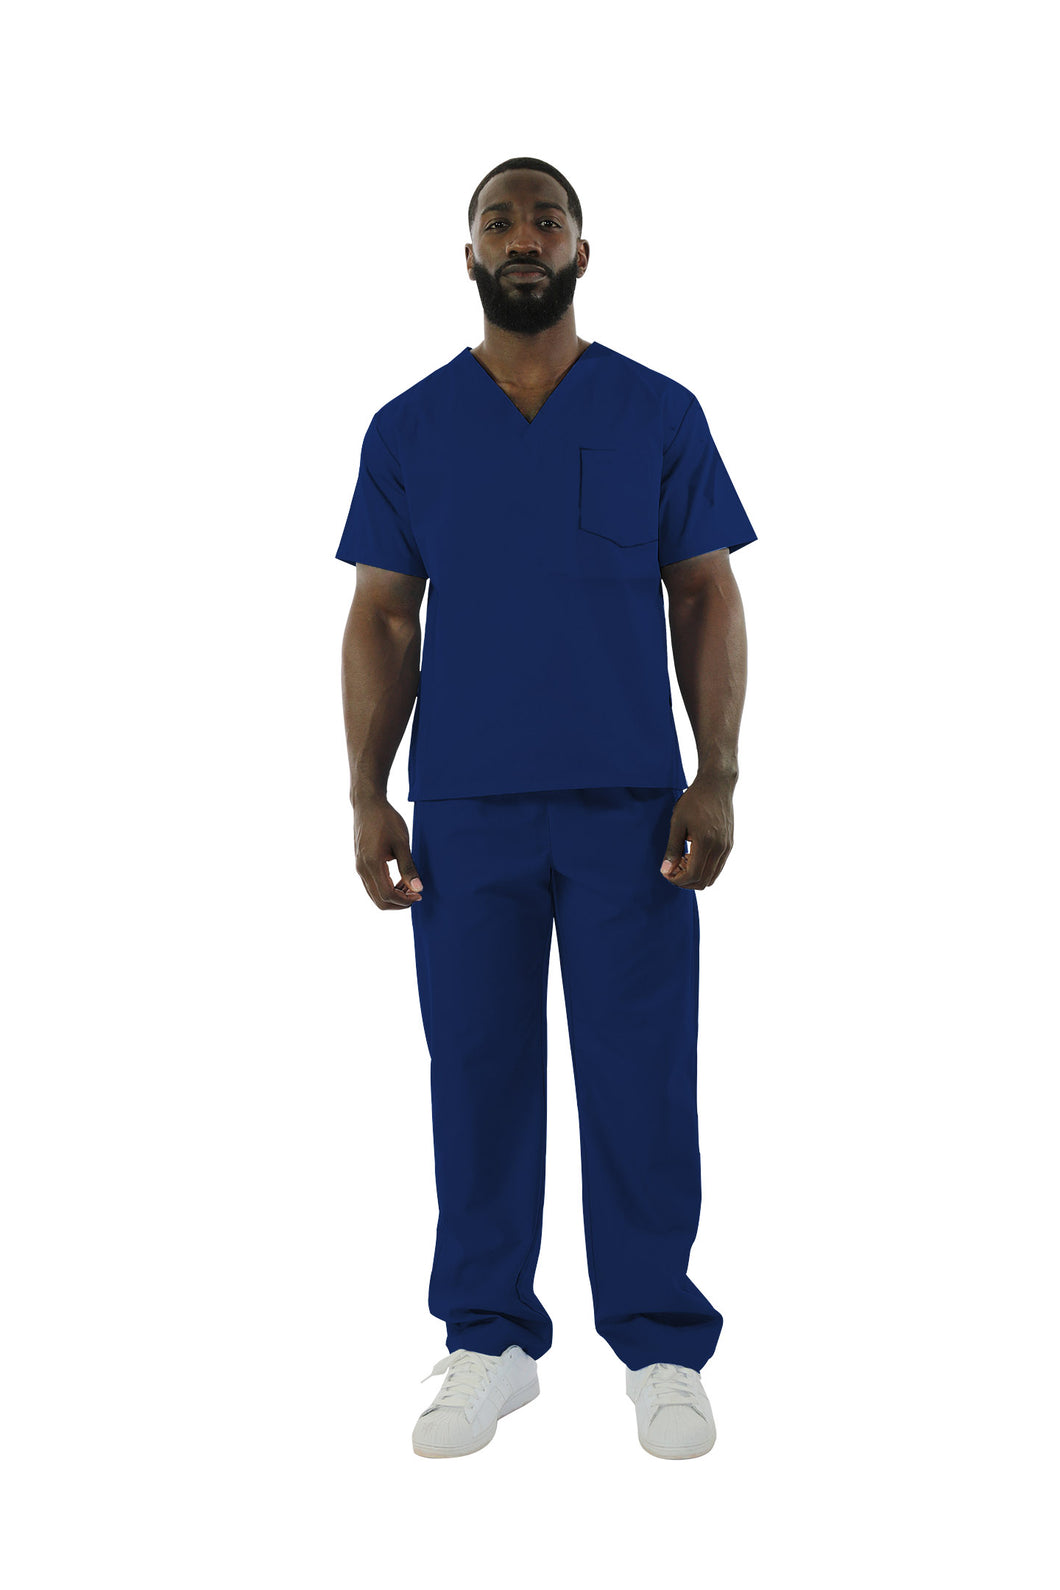 220C - UltraSoft One Pocket Scrub Top